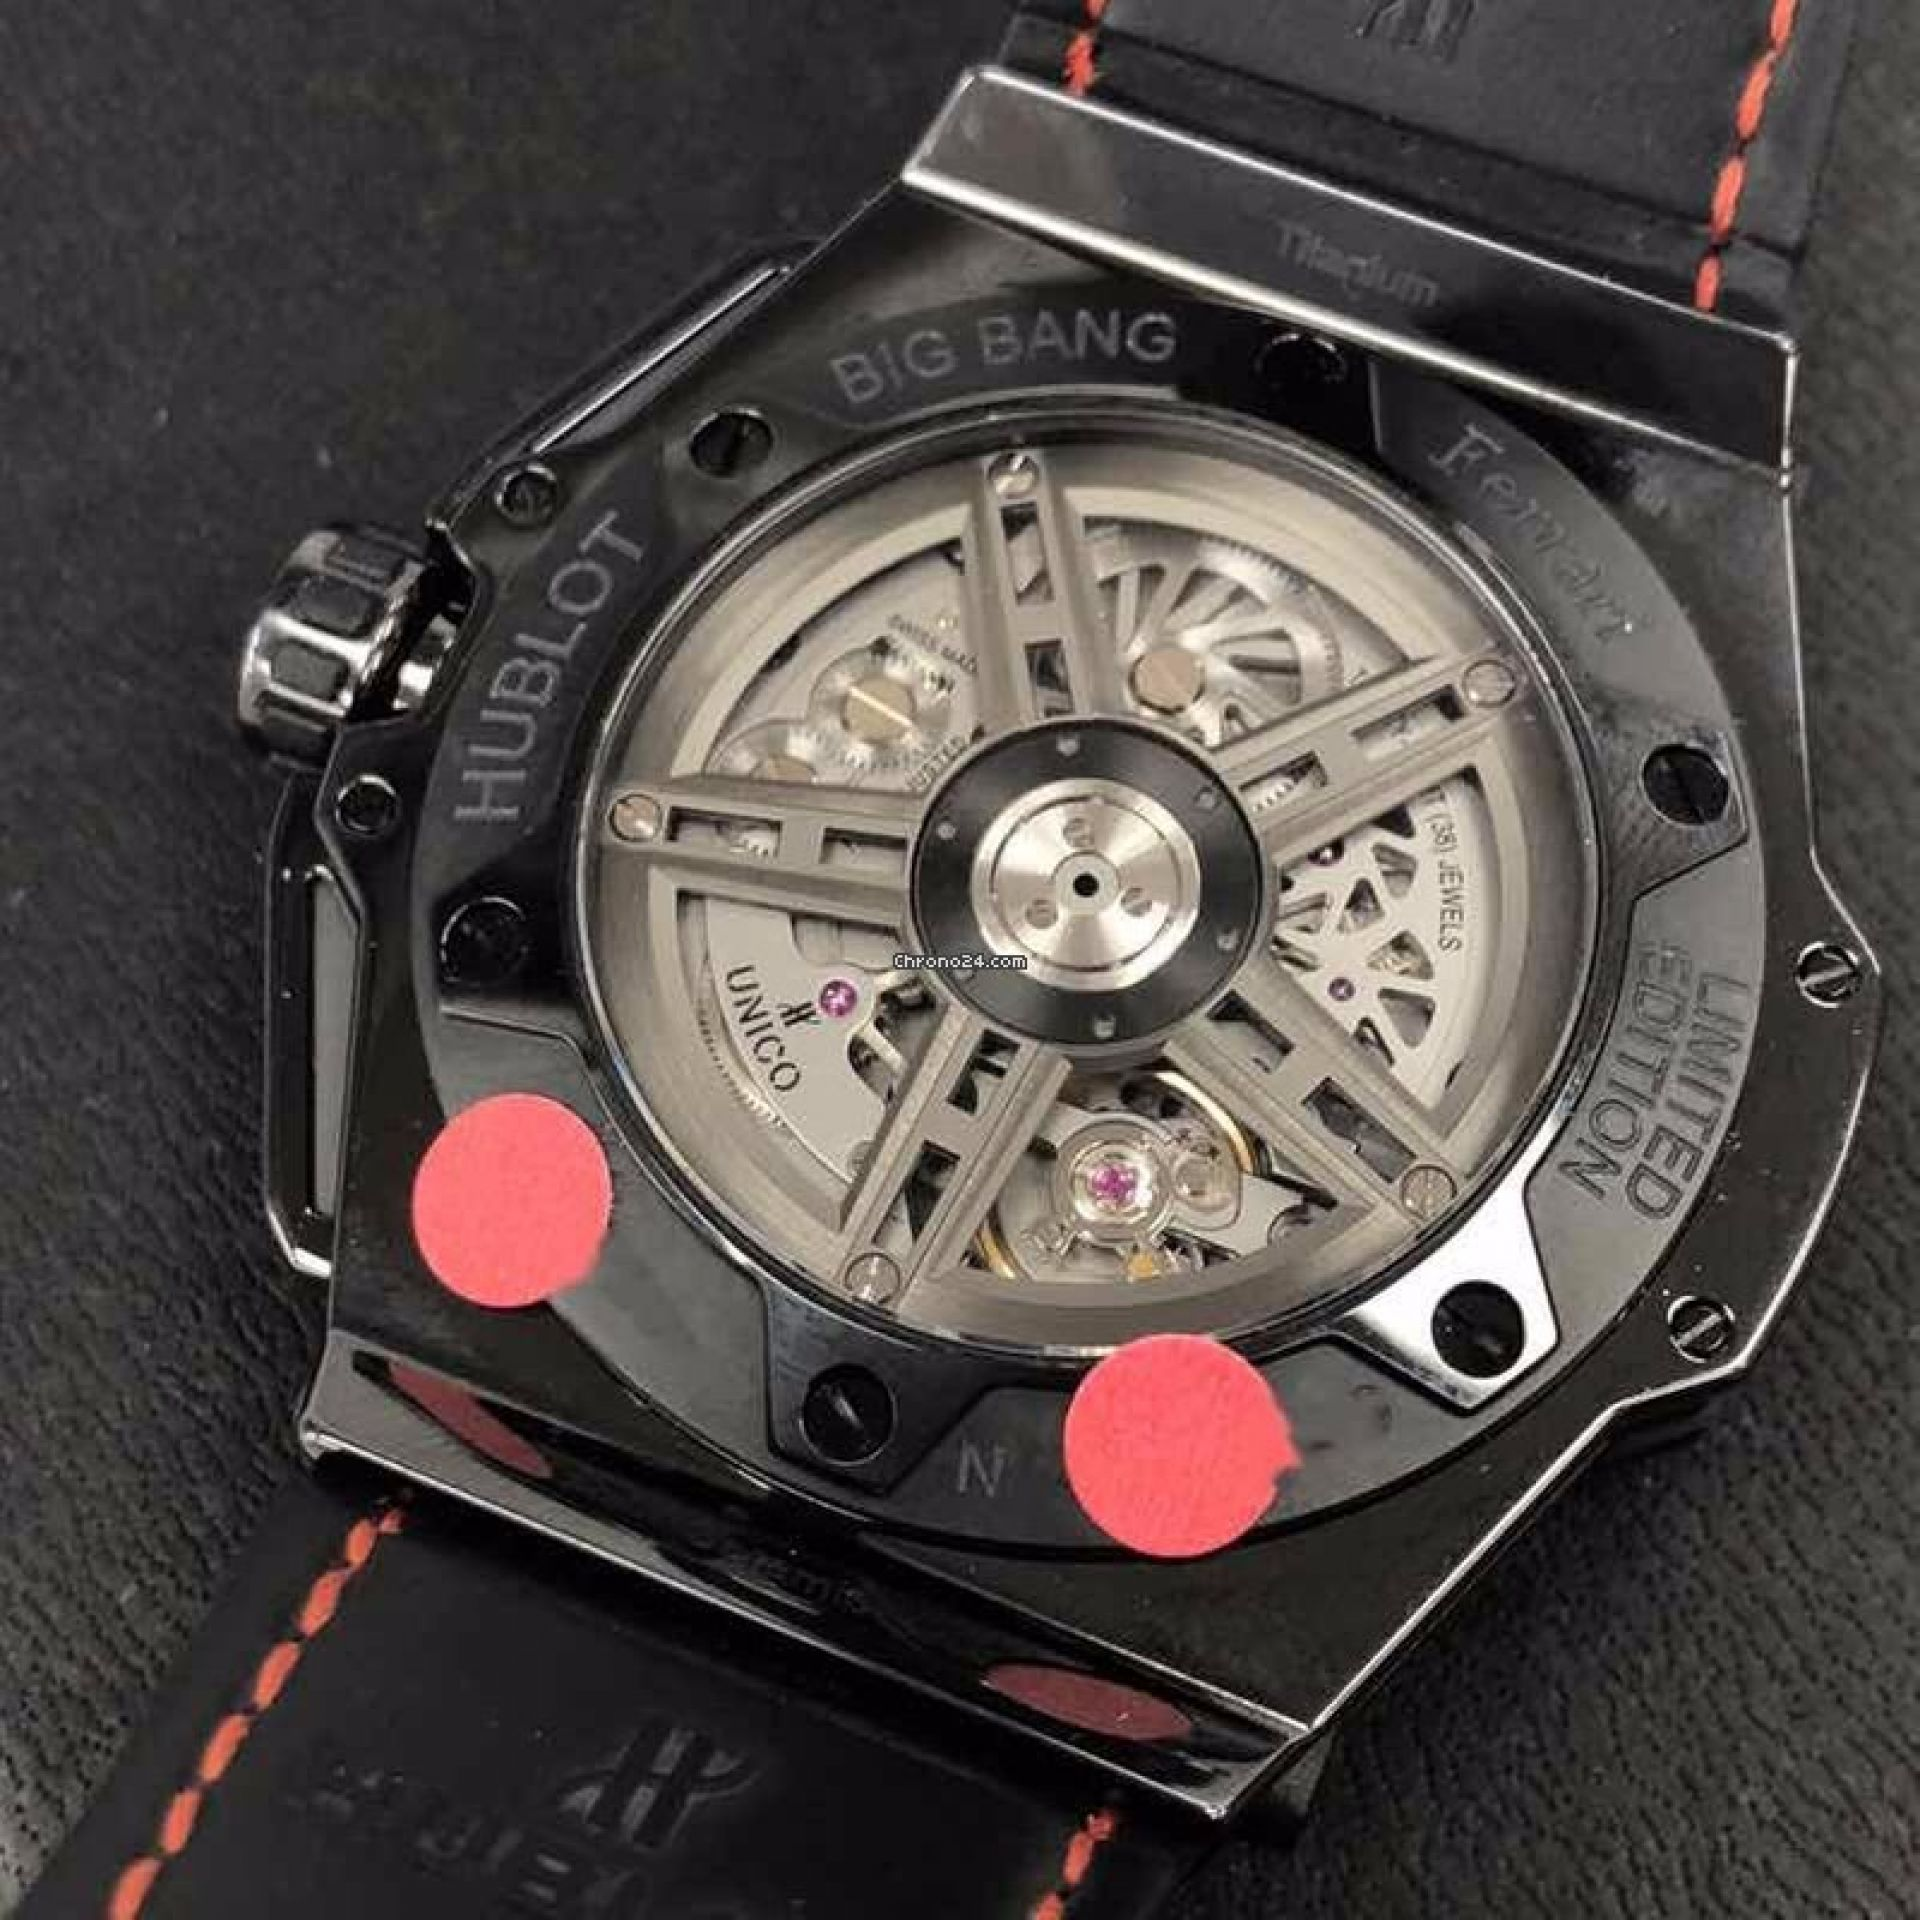 Hengbao Big Bang Ceramics Silver Automatic